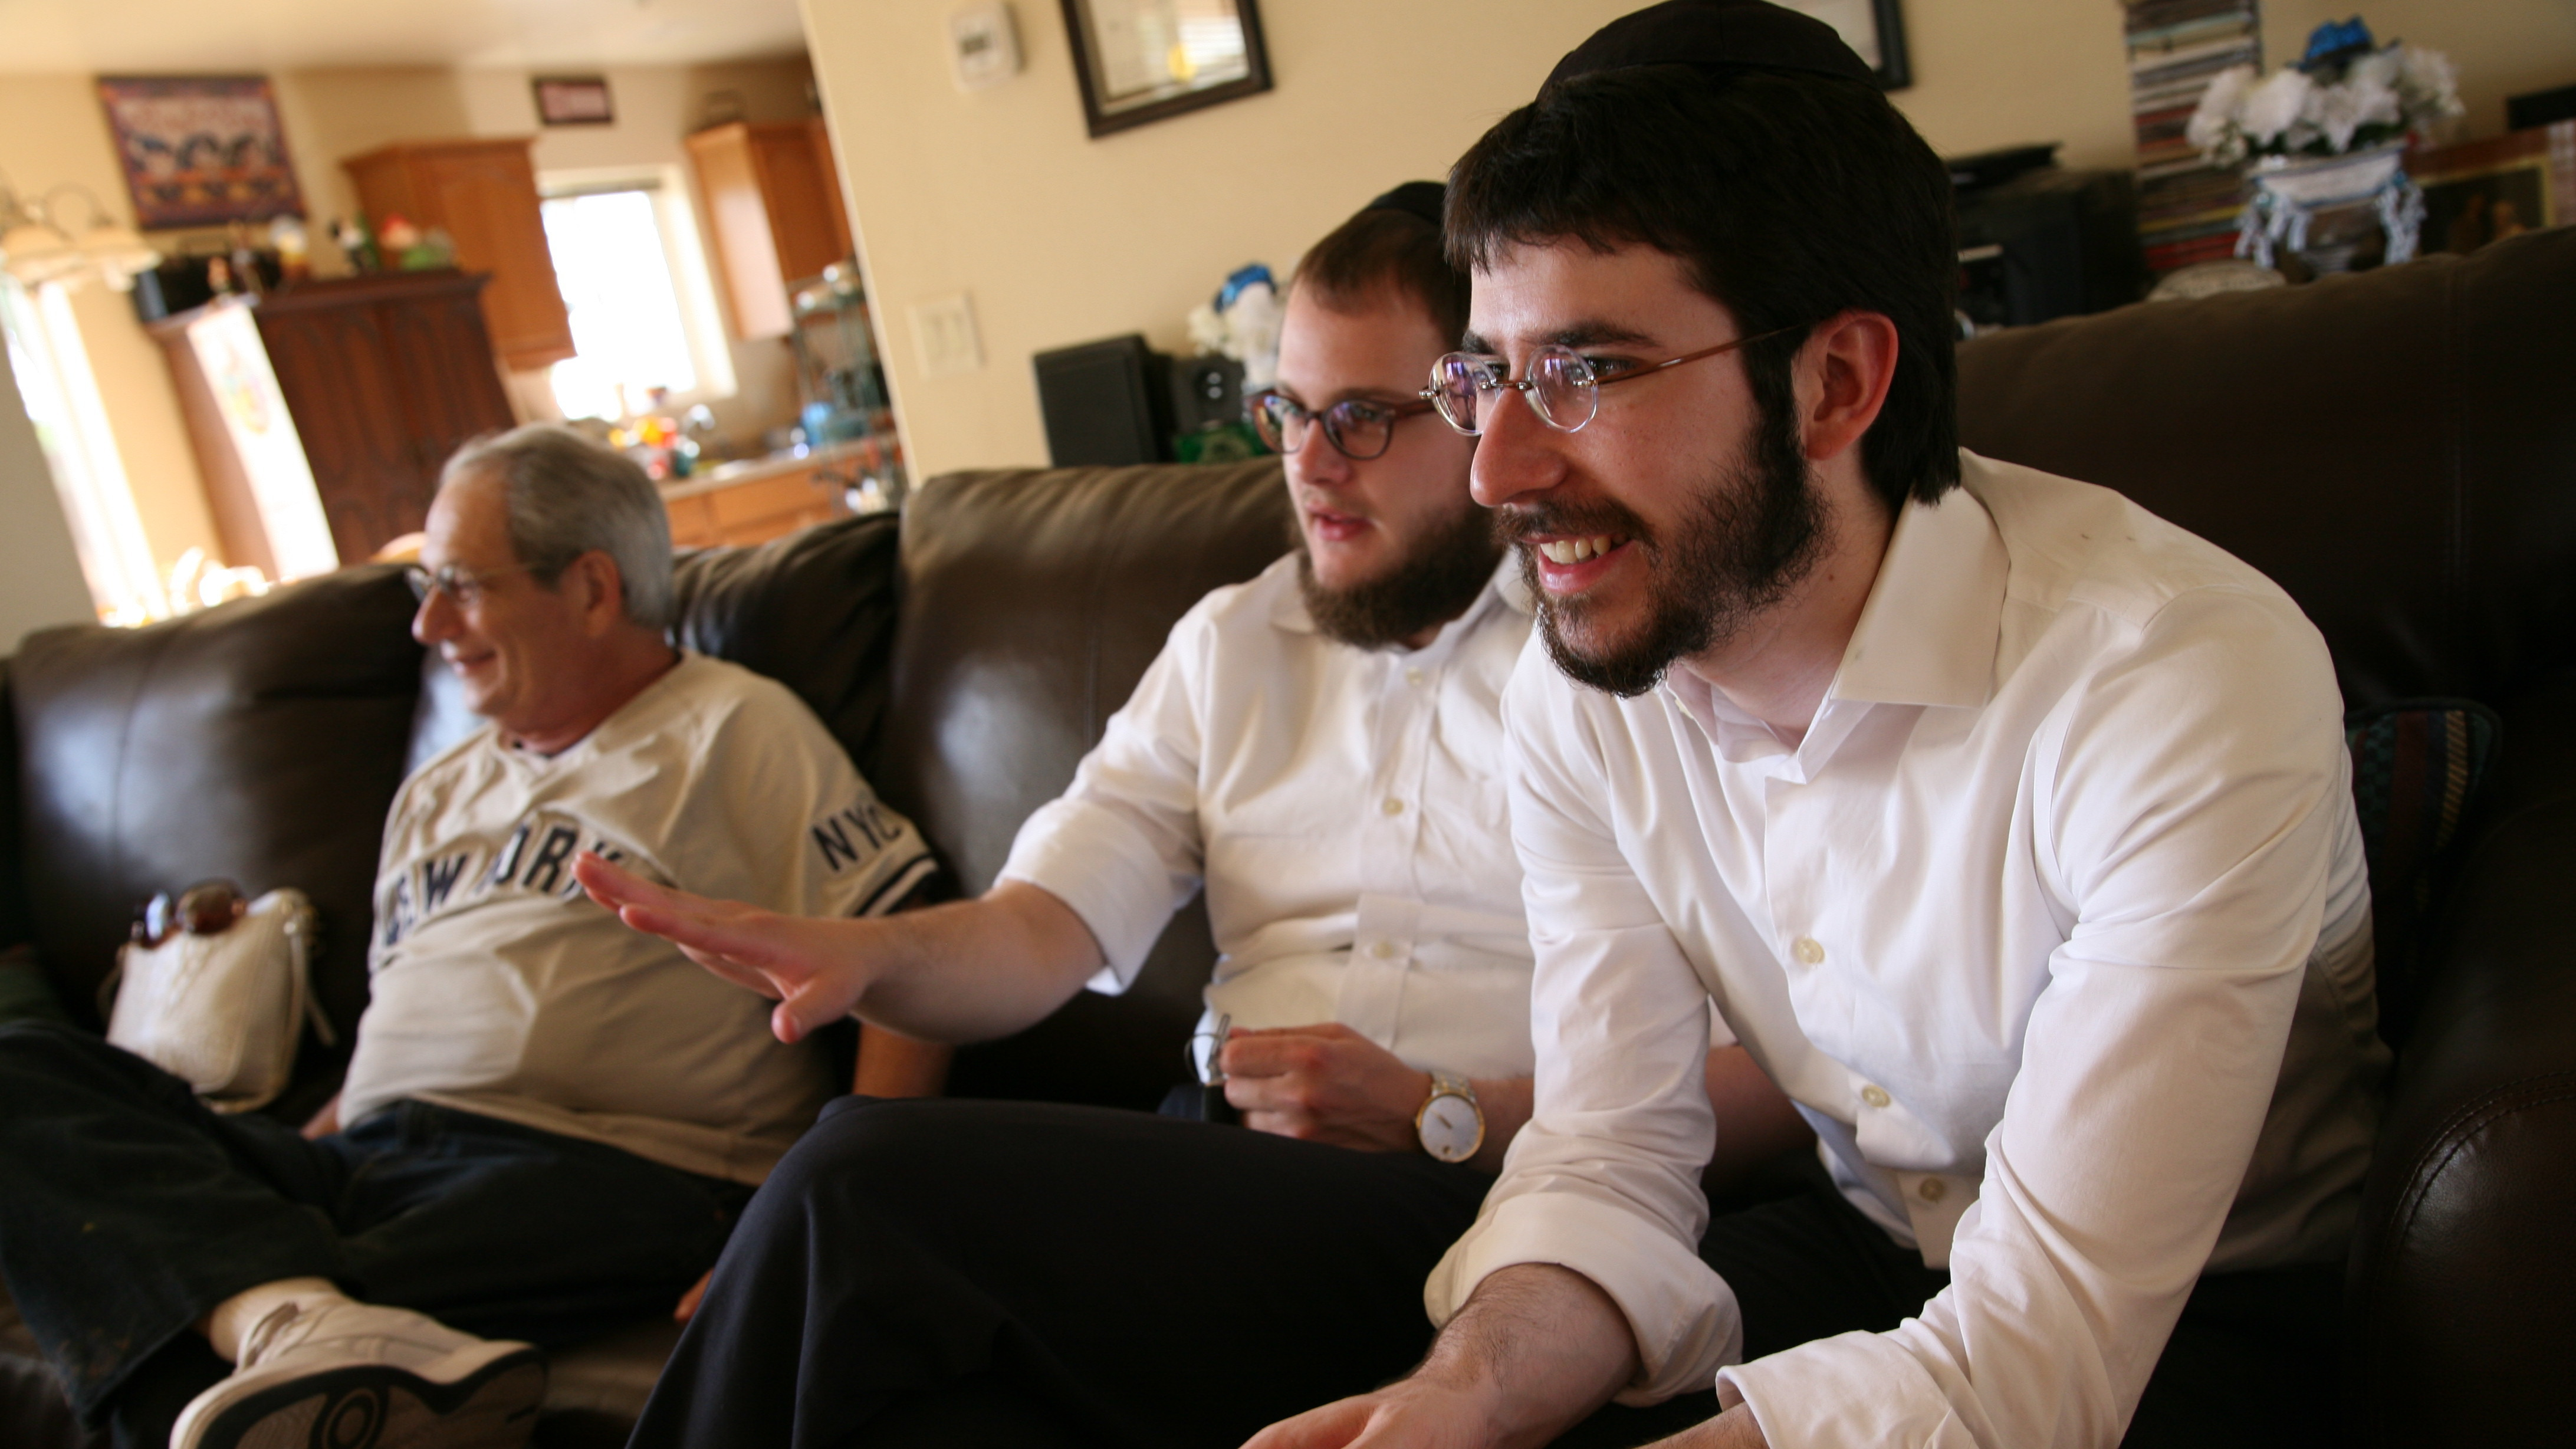 jewish single men in menifee Find synagogues in murrieta, ca on yellowbook get reviews and contact details for each business including videos, opening hours and more.